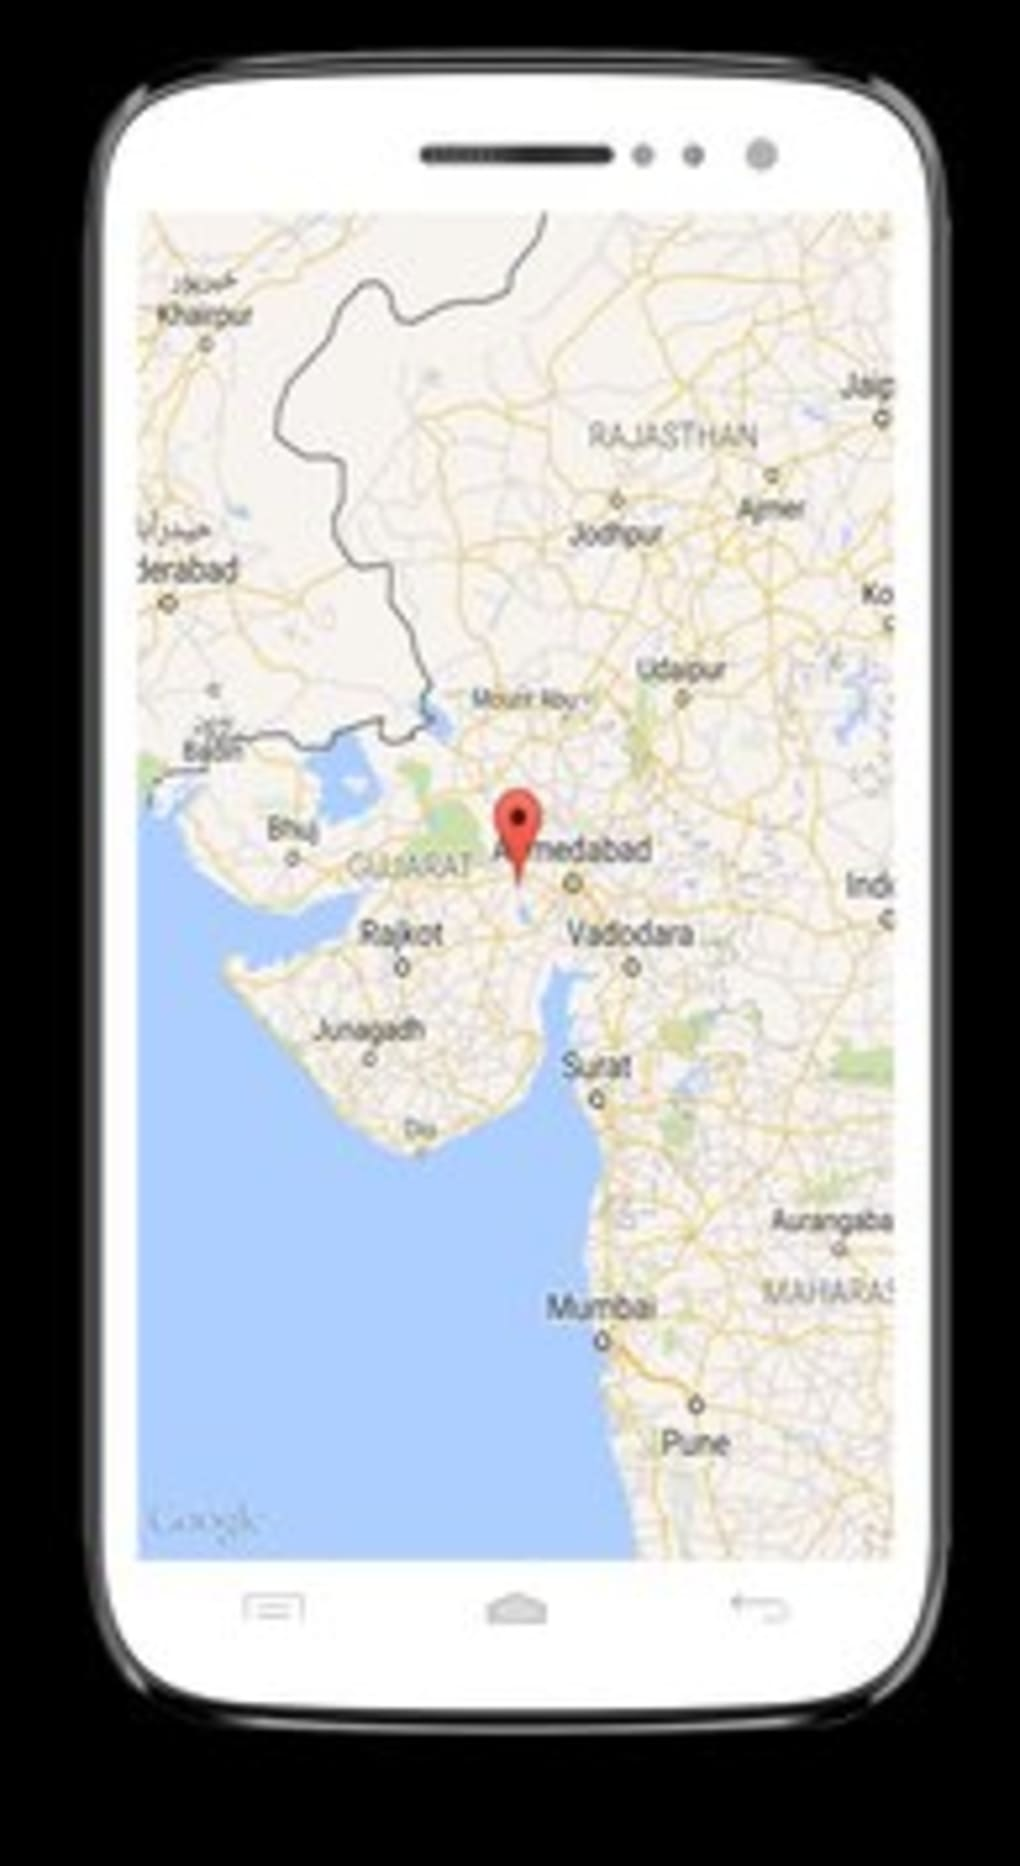 Mobile Number Tracker Location for Android - Download